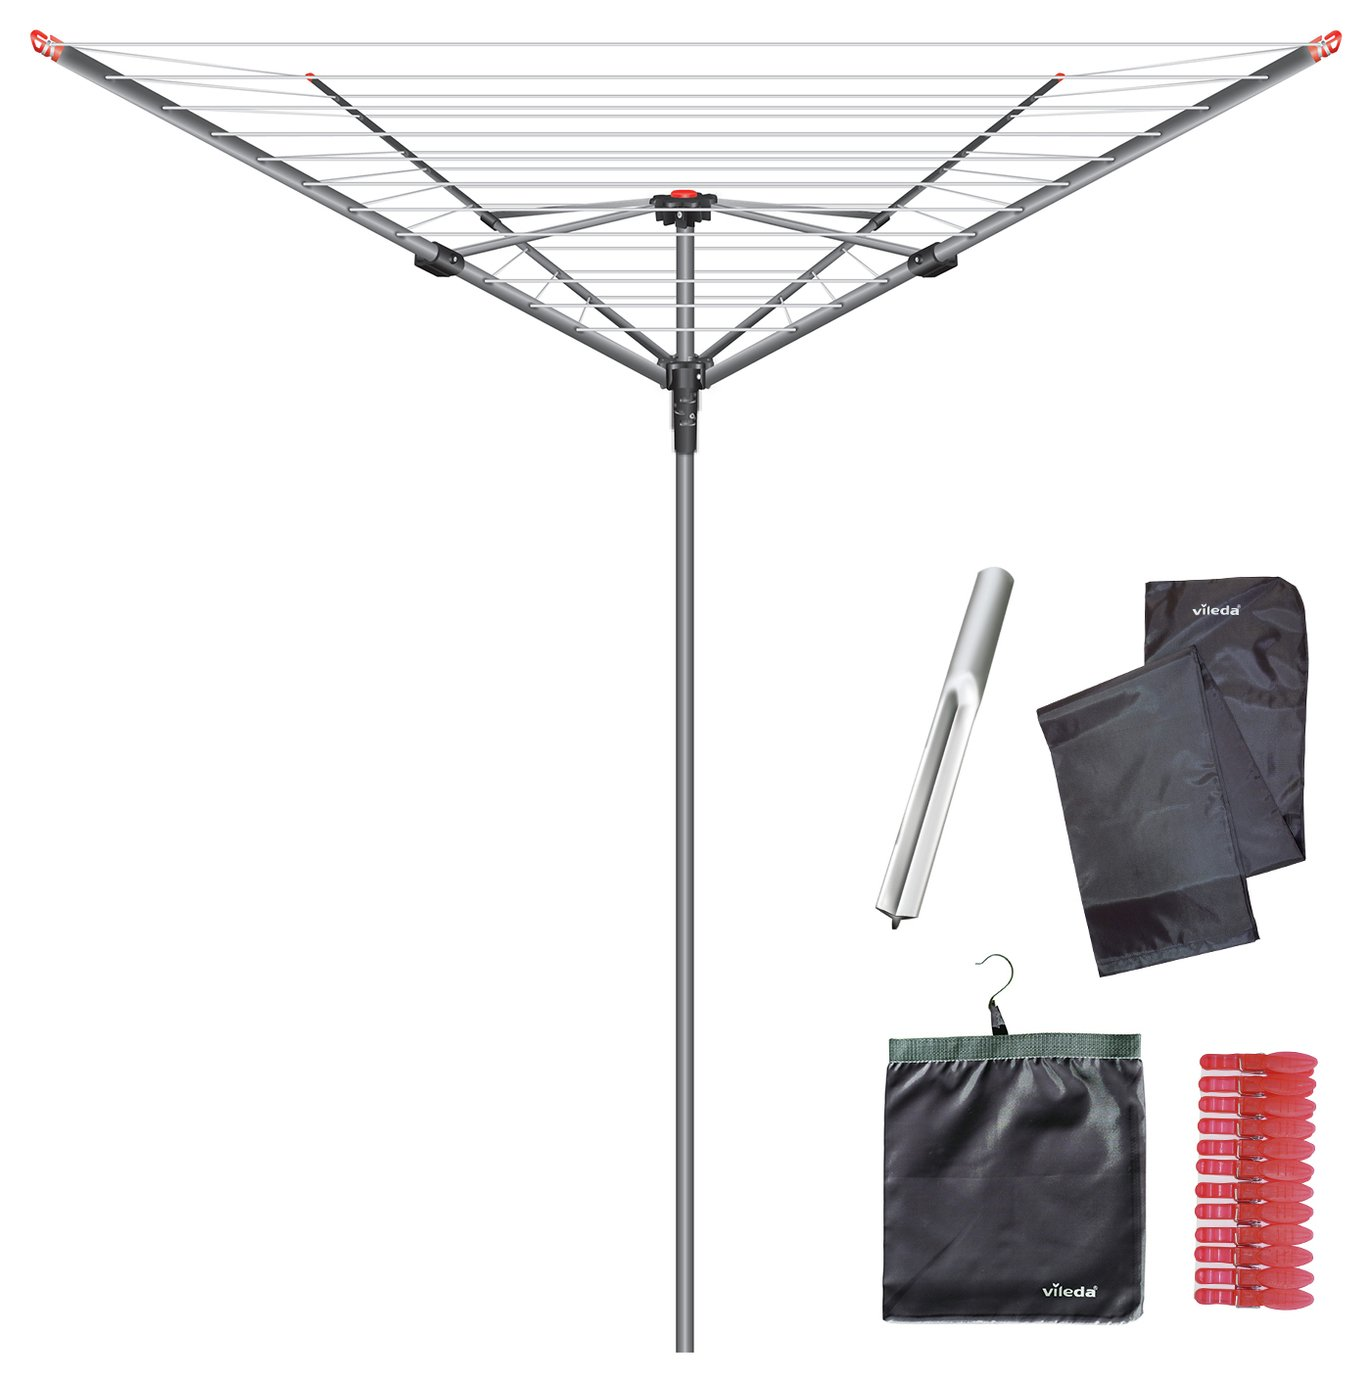 Vileda 60m 4 Arm Rotary Outdoor Washing Line review